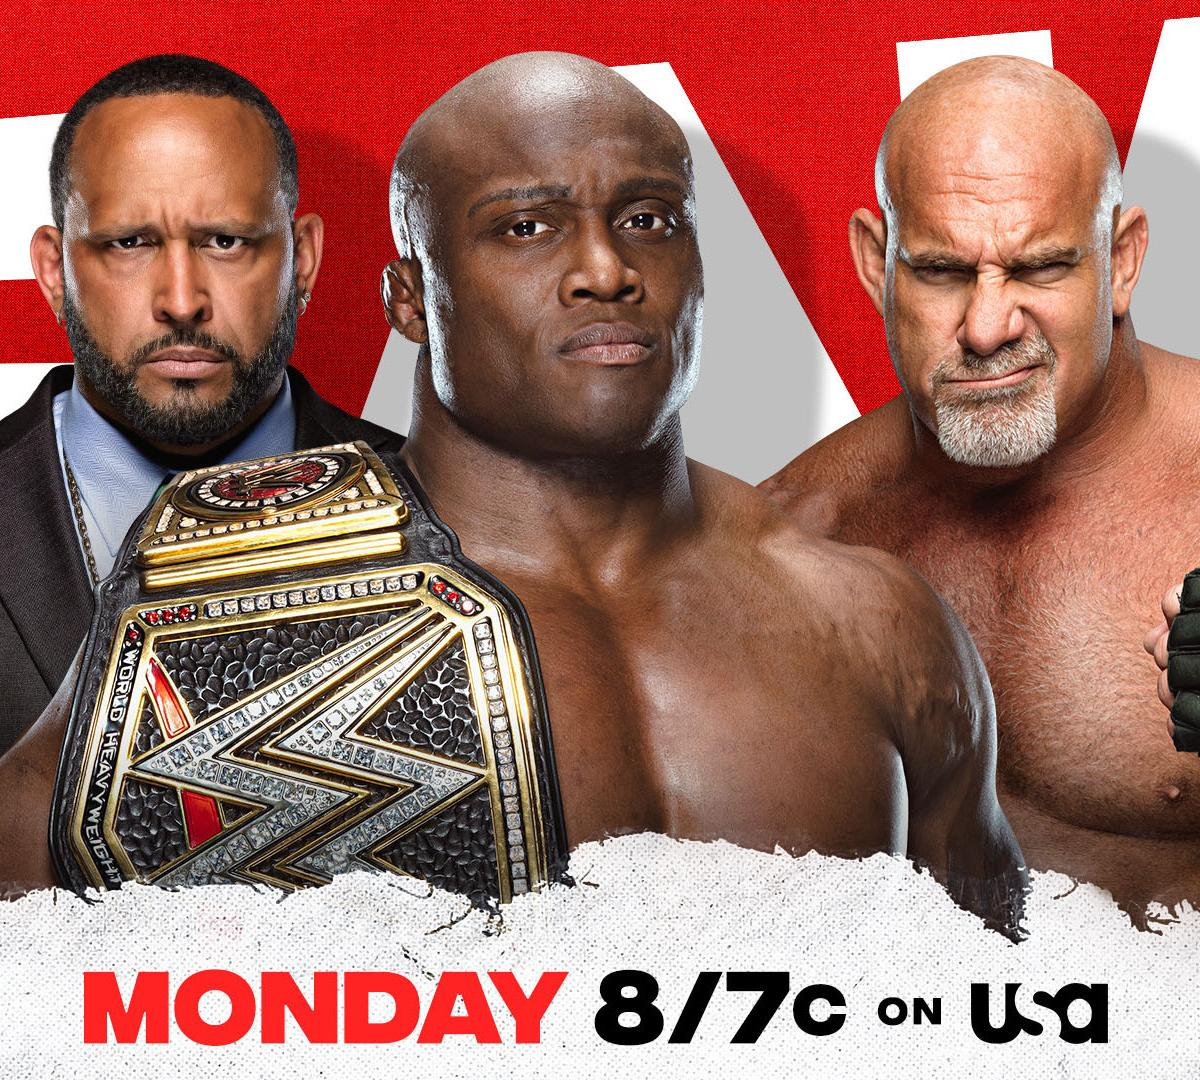 Advice to WWE Creative: How to Make Goldberg and Lashley Look Good in Their Feud